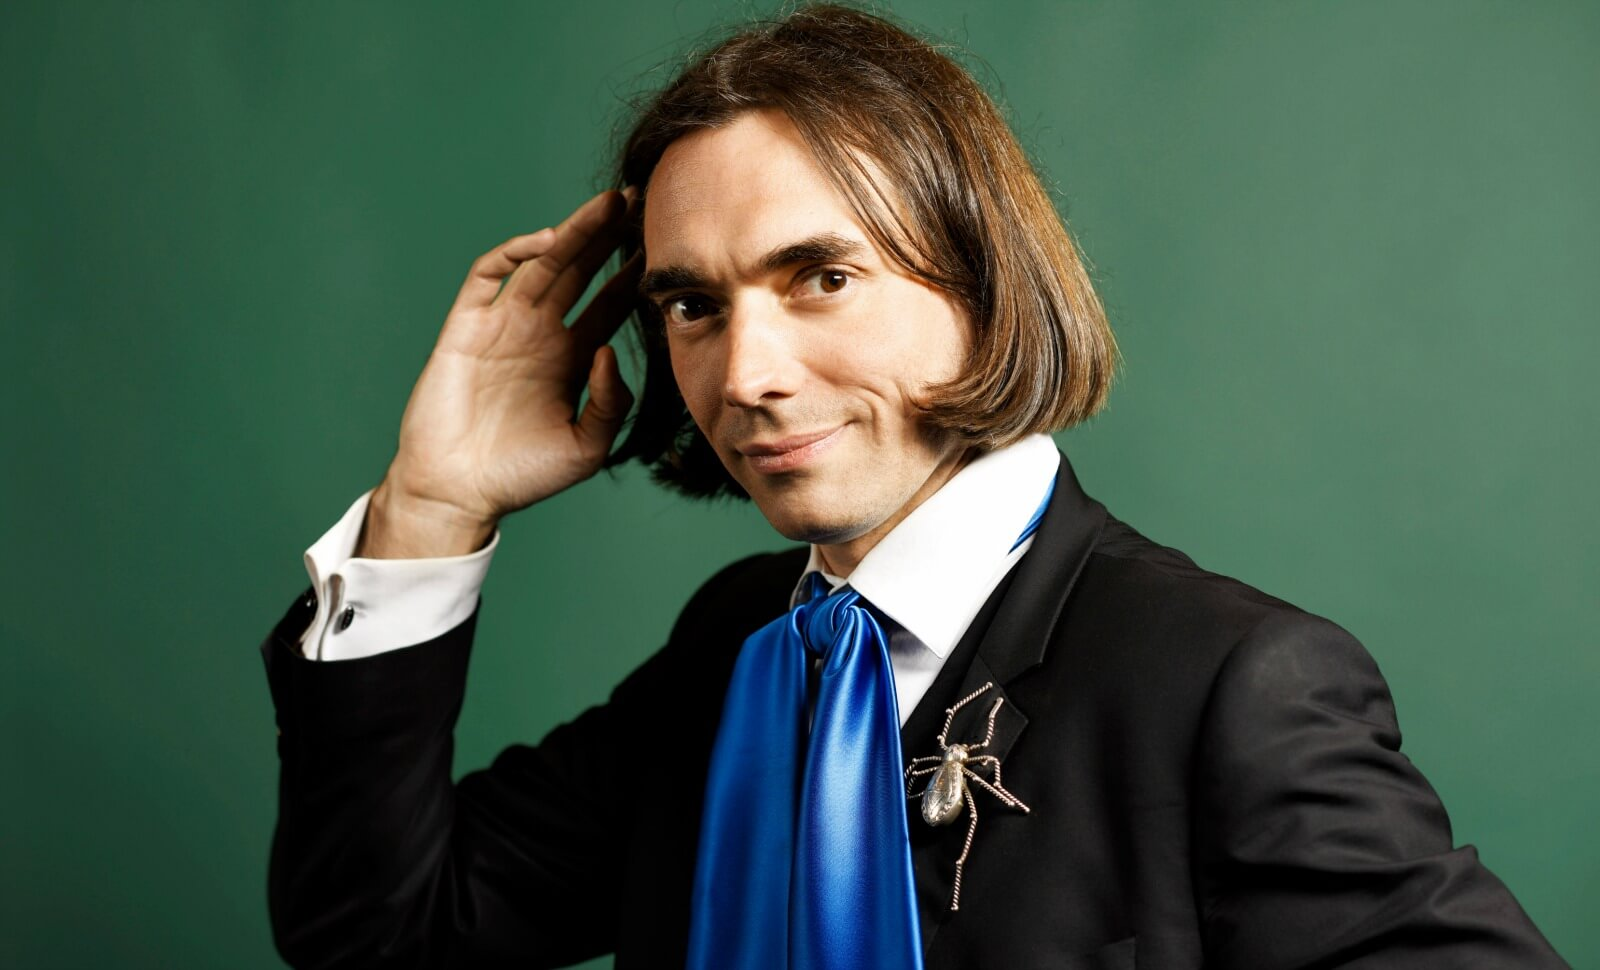 Cédric Villani & His Prepared Mind